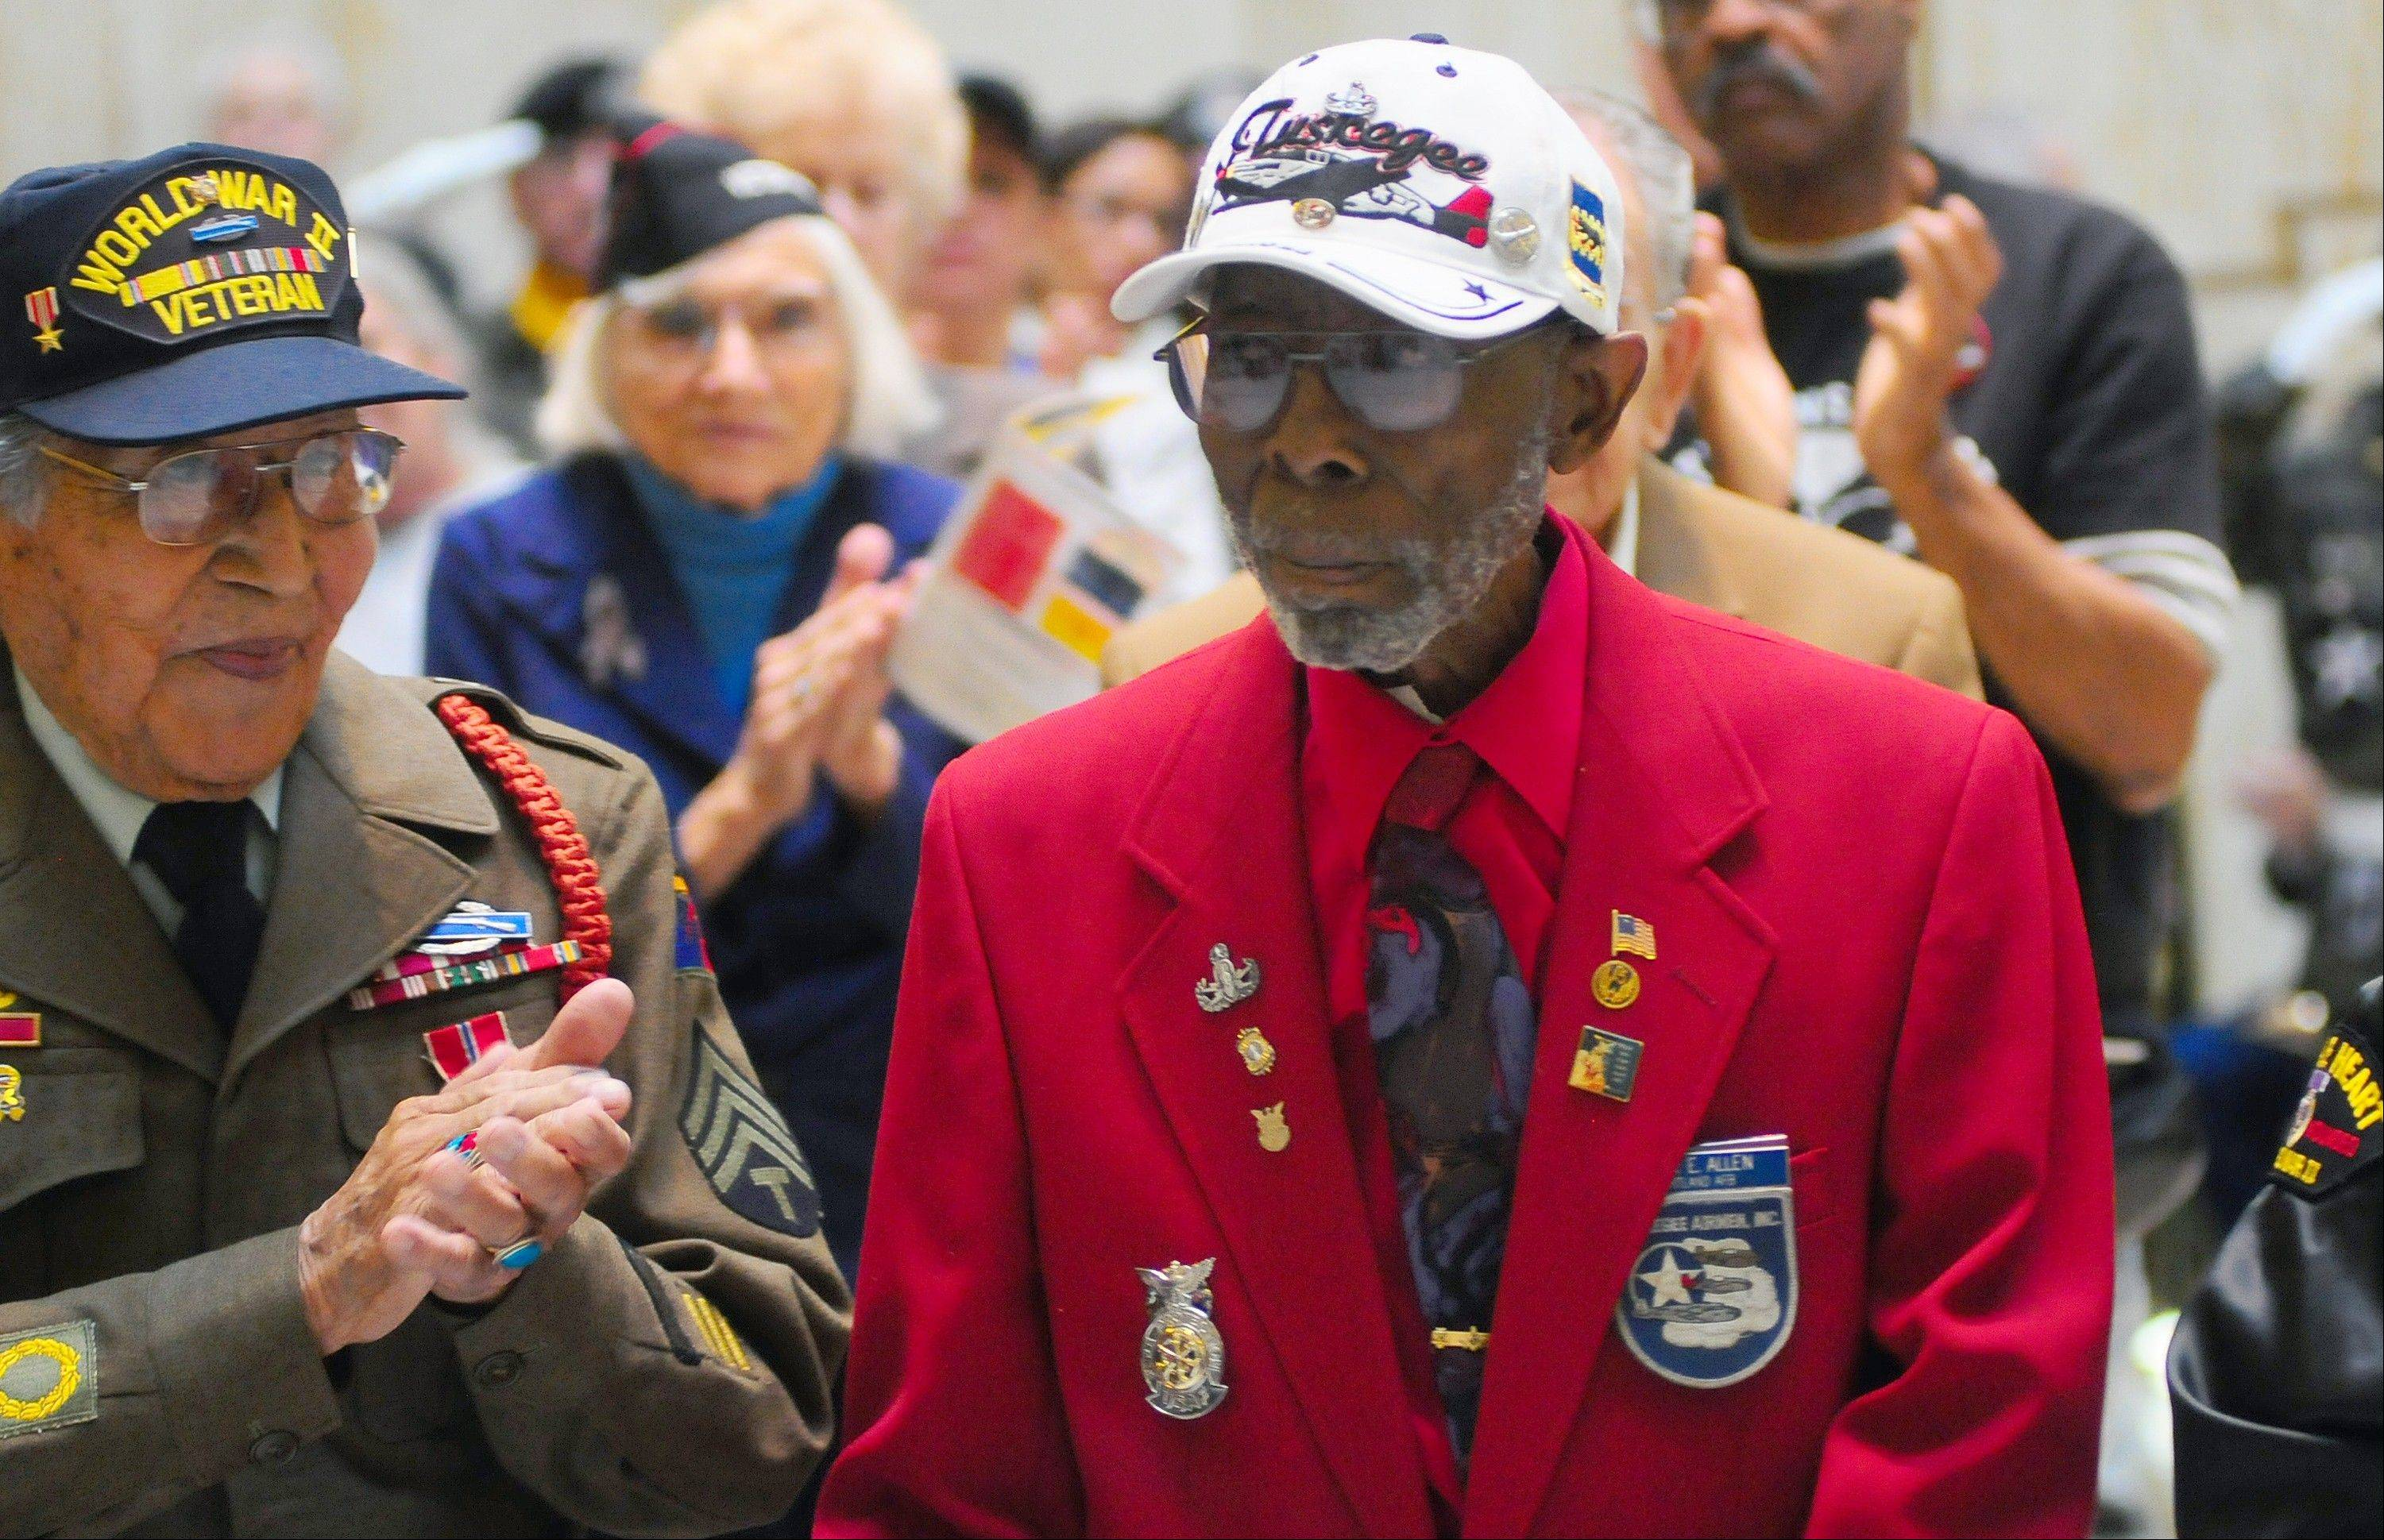 Tuskegee Airman John Allen, right, of Rio Rancho, N.M. is applauded by World War II veteran Tom Dailey at the Capitol Rotunda in Santa Fe, N.M, last February.